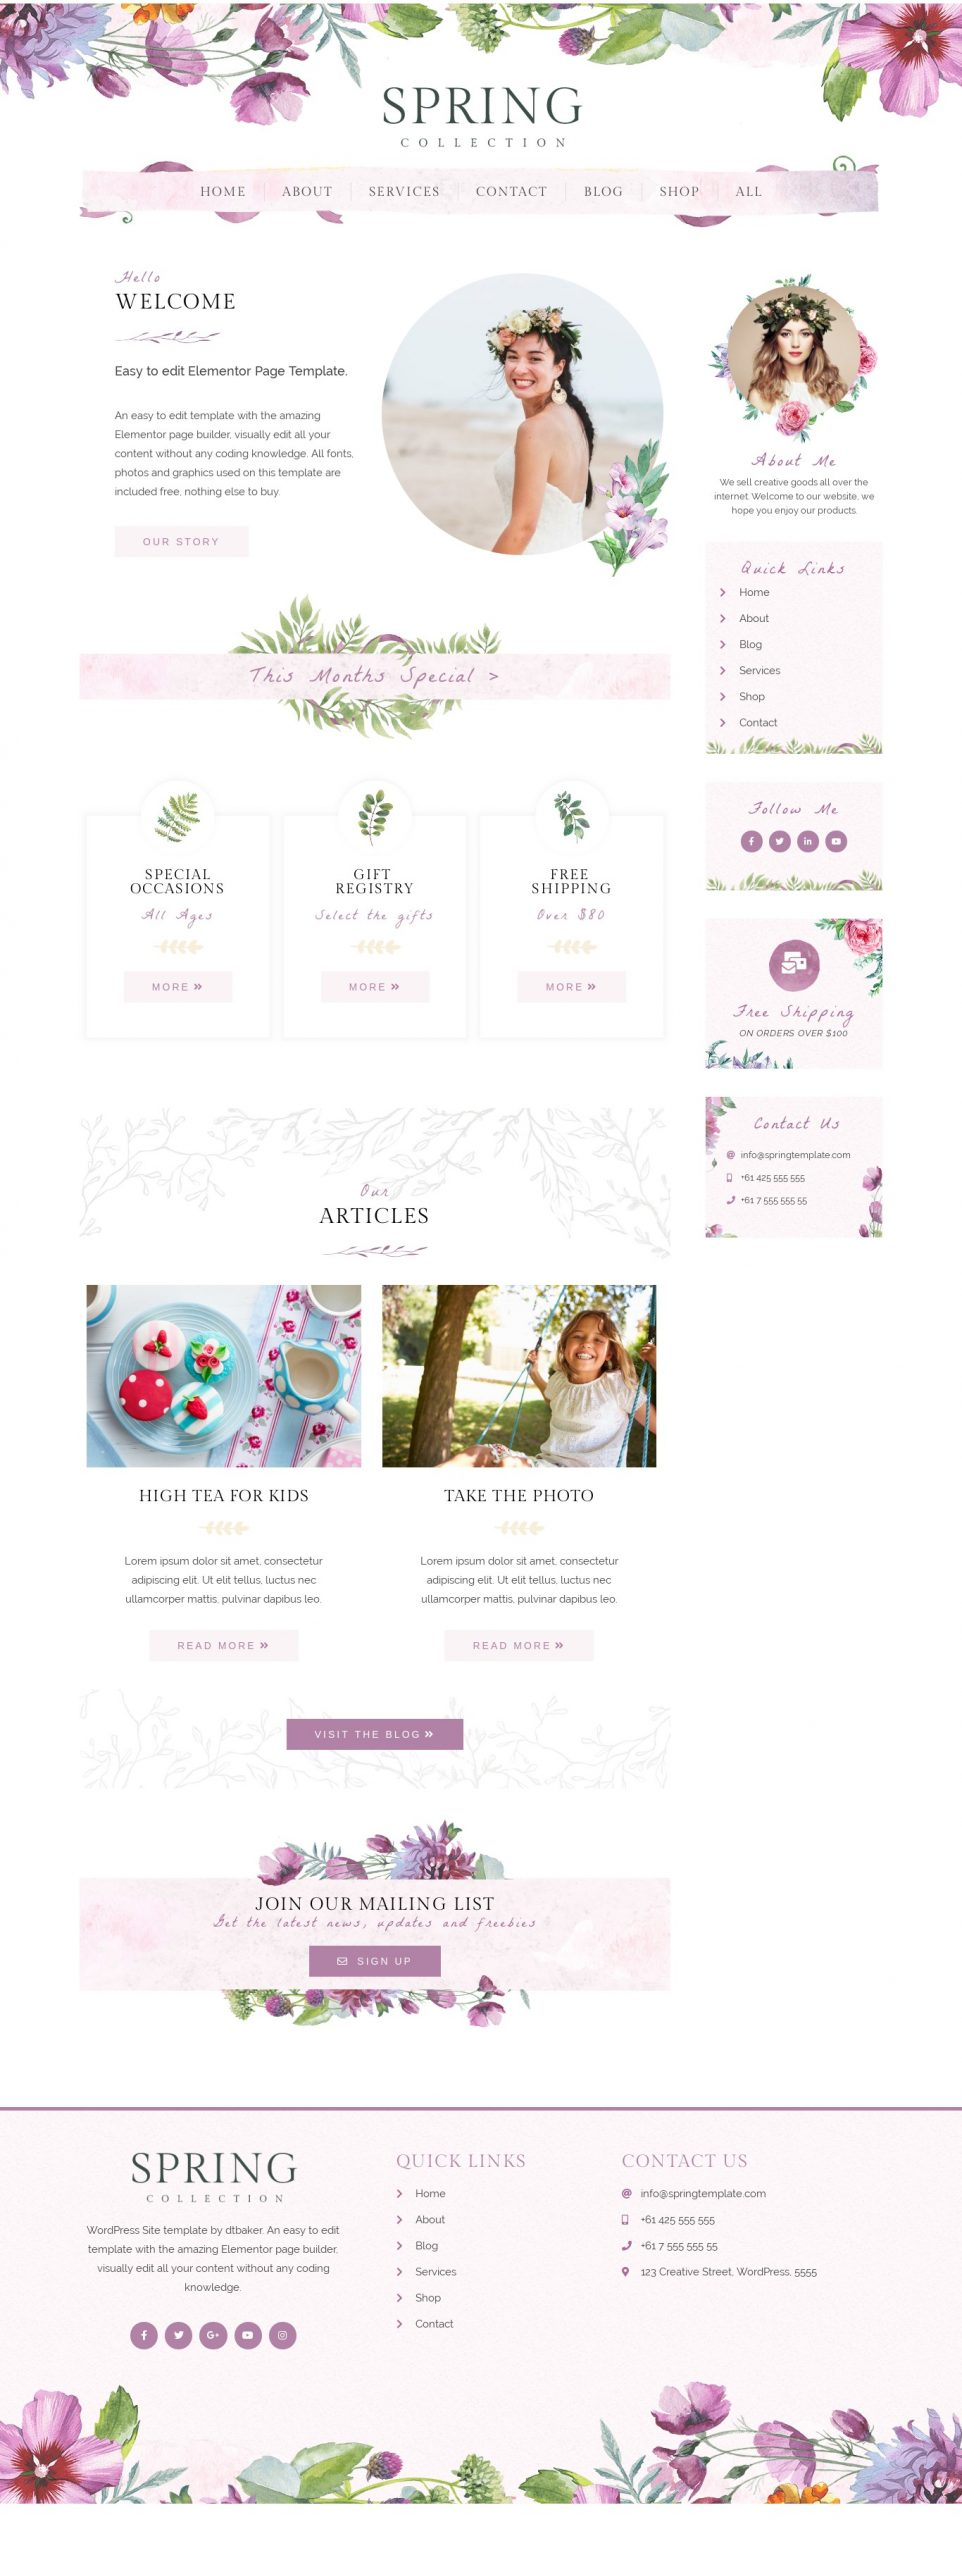 Page - Home Page 4